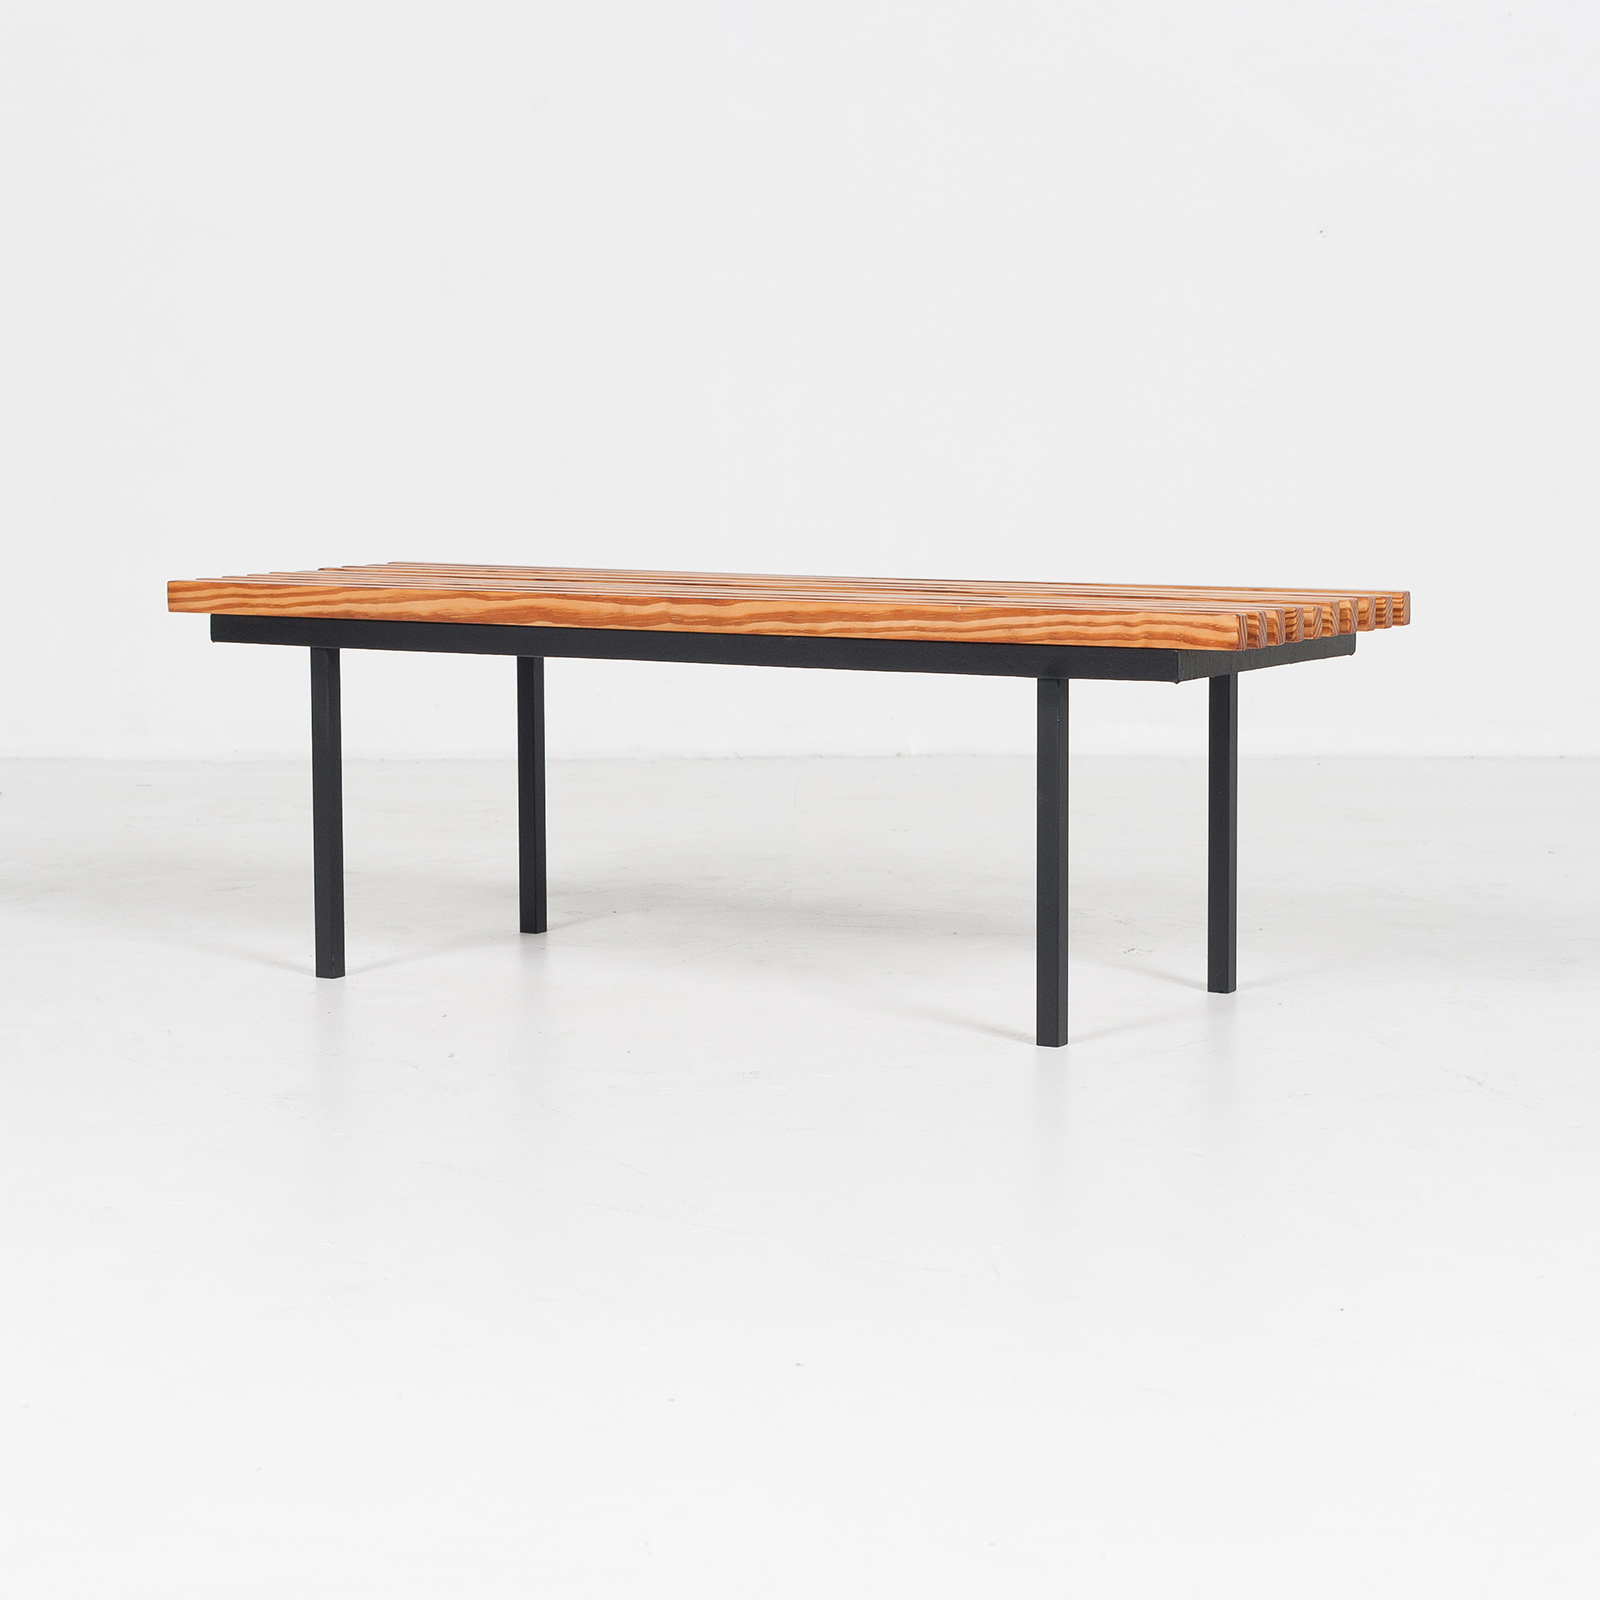 Bench In Pine And Steel, 1950s, The Netherlands 09